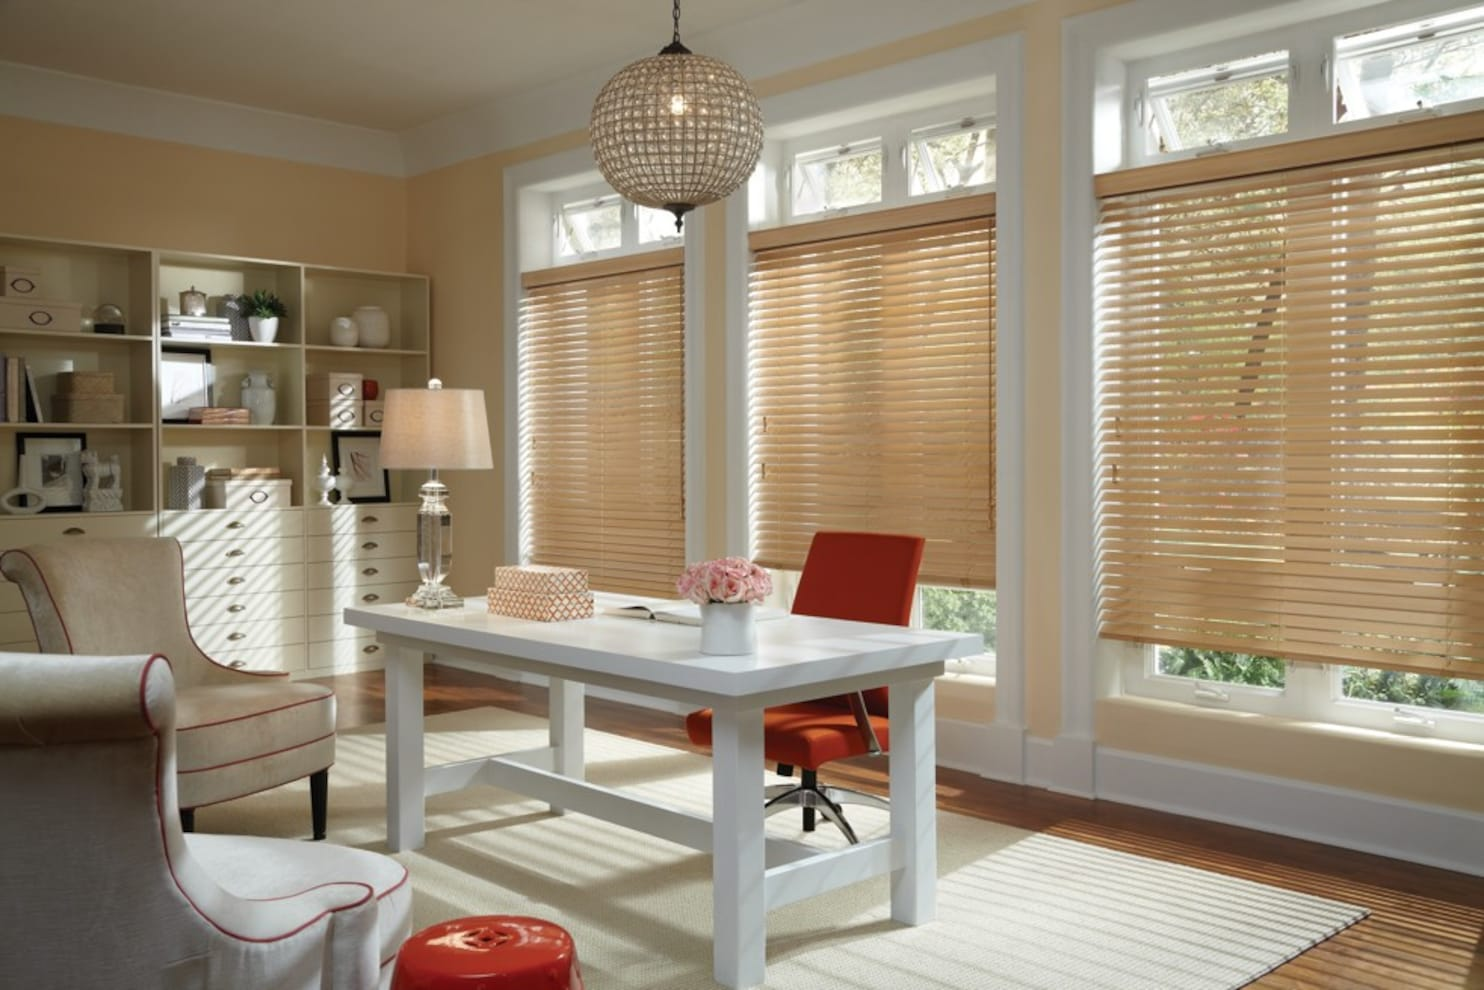 Where Can I Buy Cheap Curtains How To Pick Window Treatments For Your Home The Washington Post